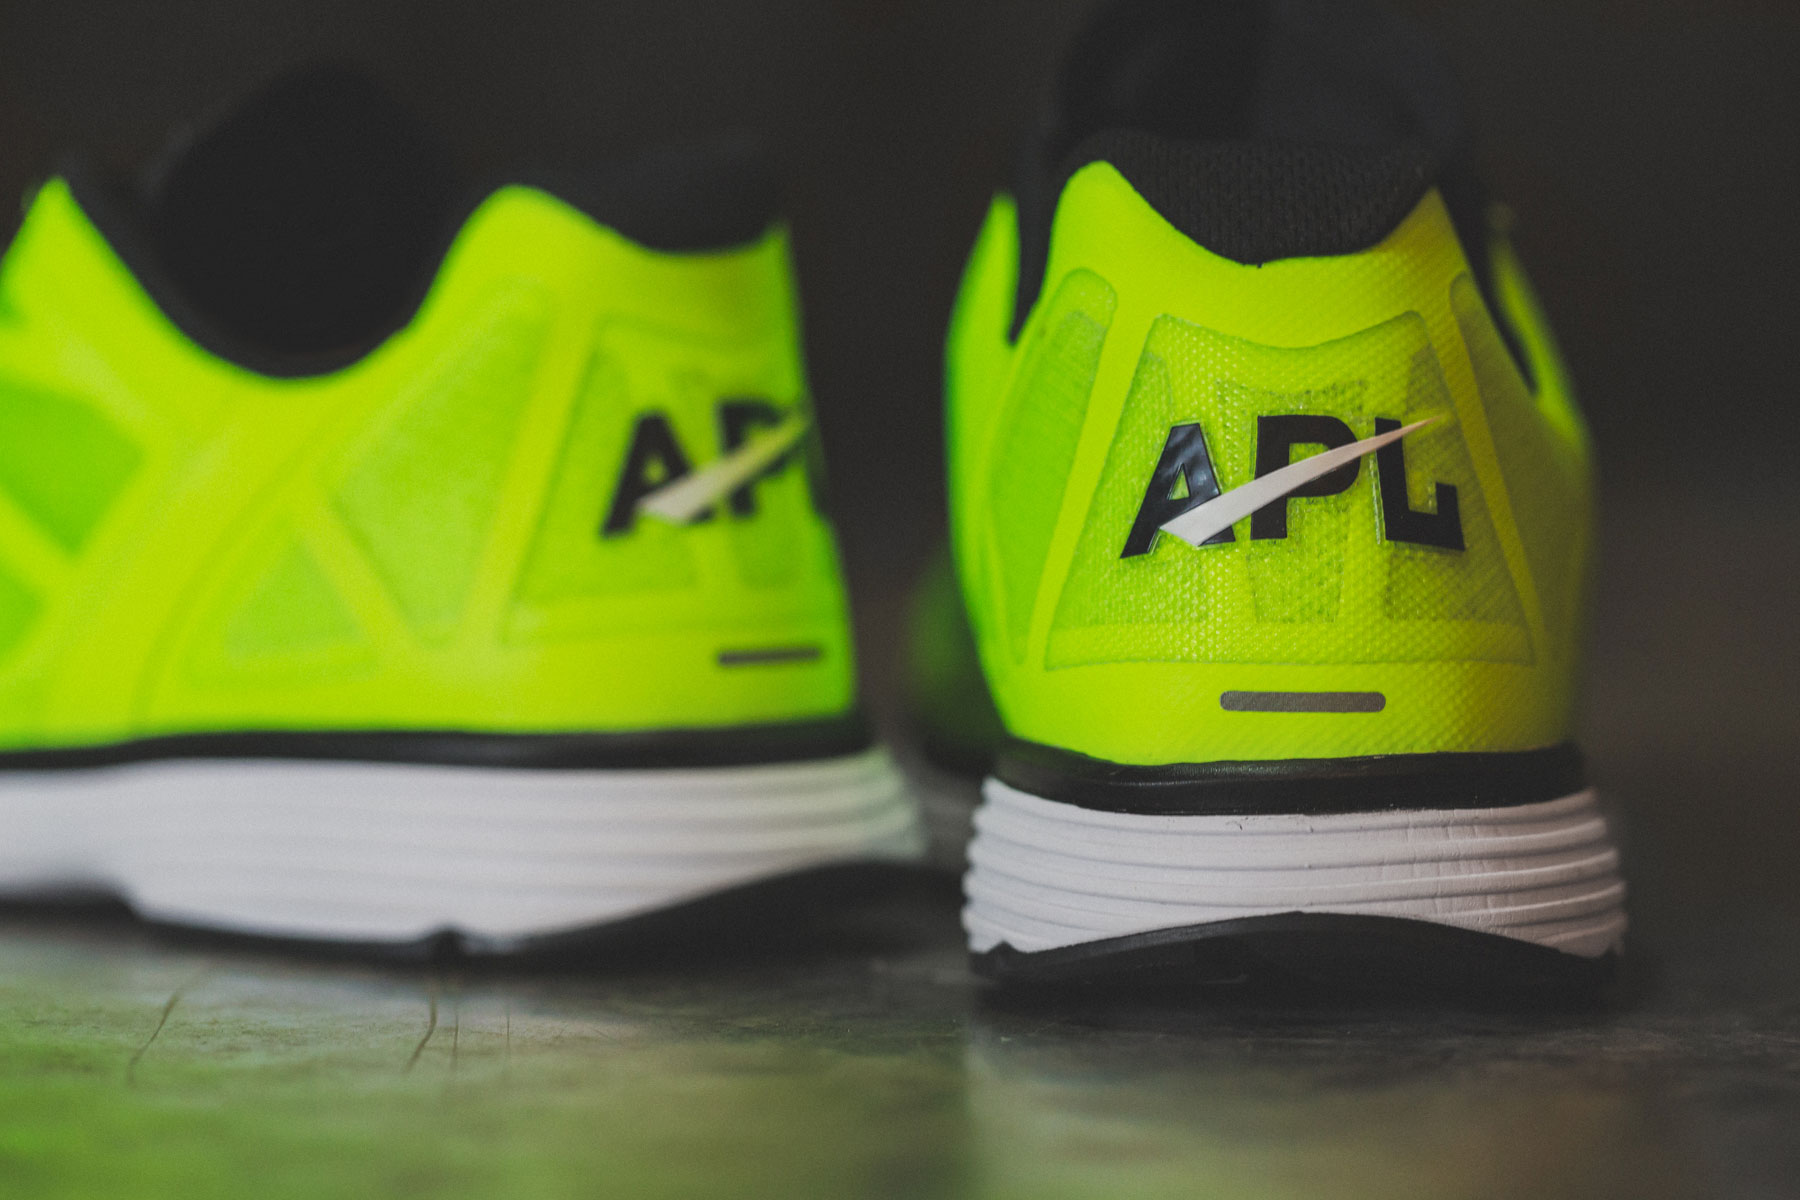 a closer look at the apl windchill